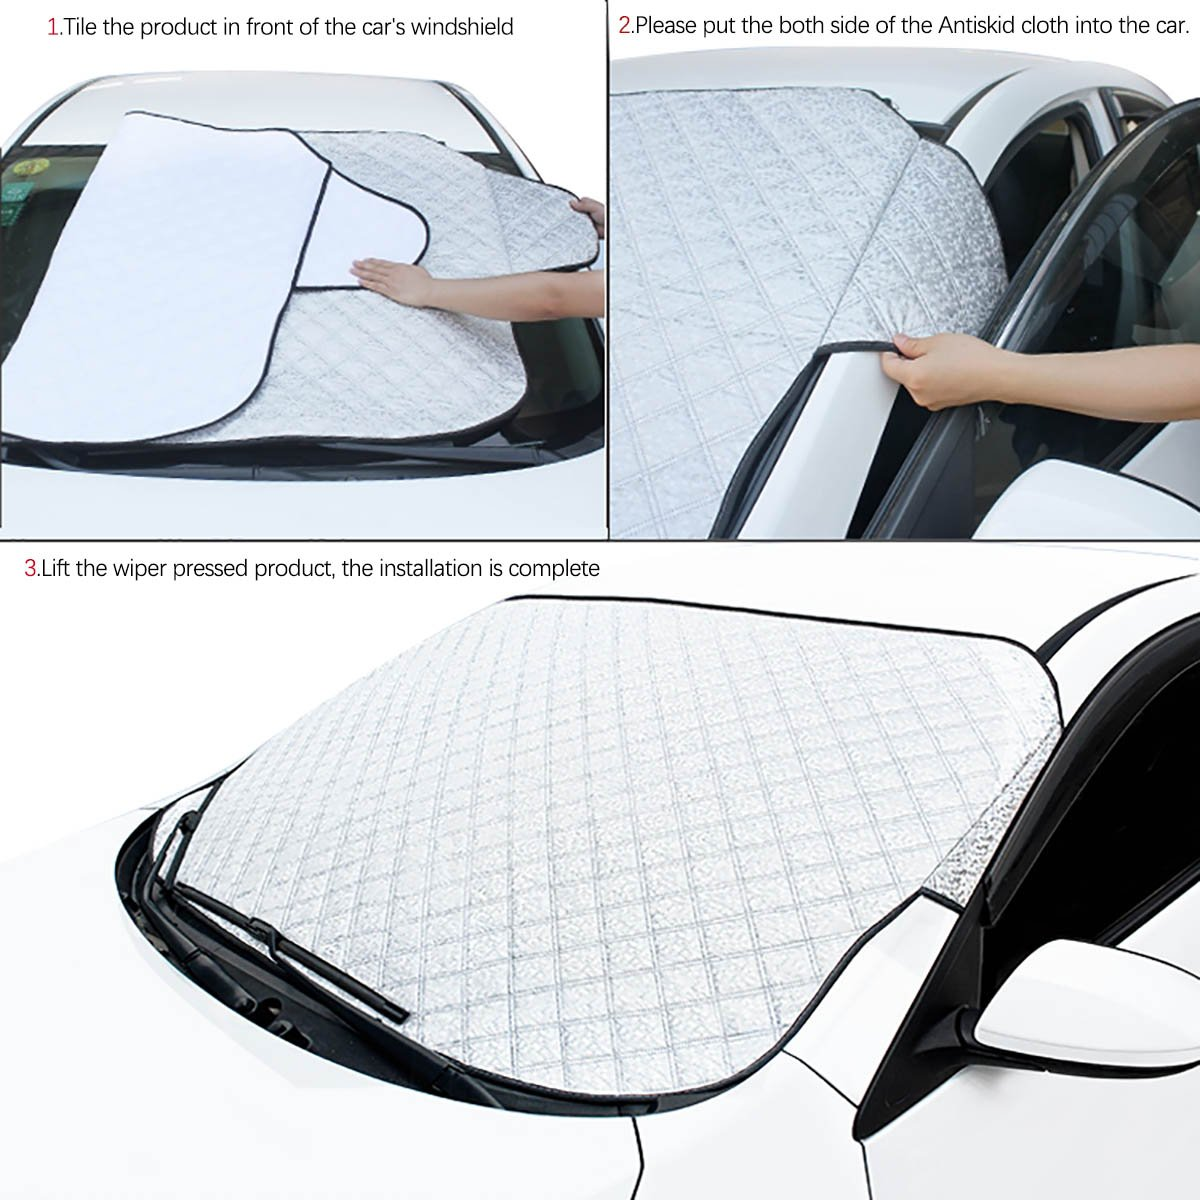 5559001106 M TPYQdirect Car Snow Cover Premium Windshield Universal Windshield Cover for Ice and Snow /& Sun Shade Protector for All Vehicles with Snow Scraper